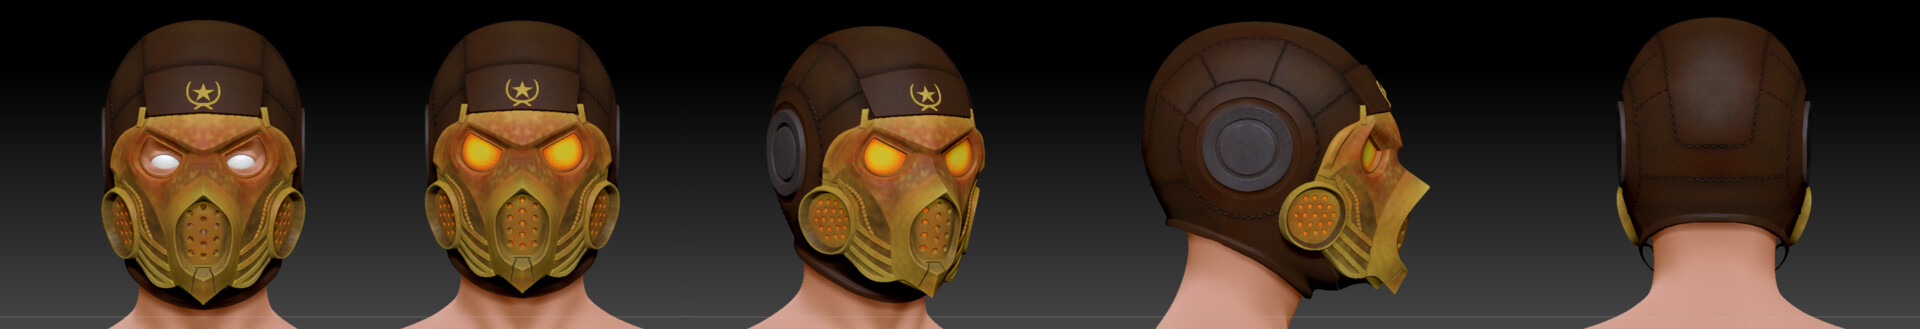 Artstation Scorpion Mask Mortal Kombat X Mkx Kold War Helmet